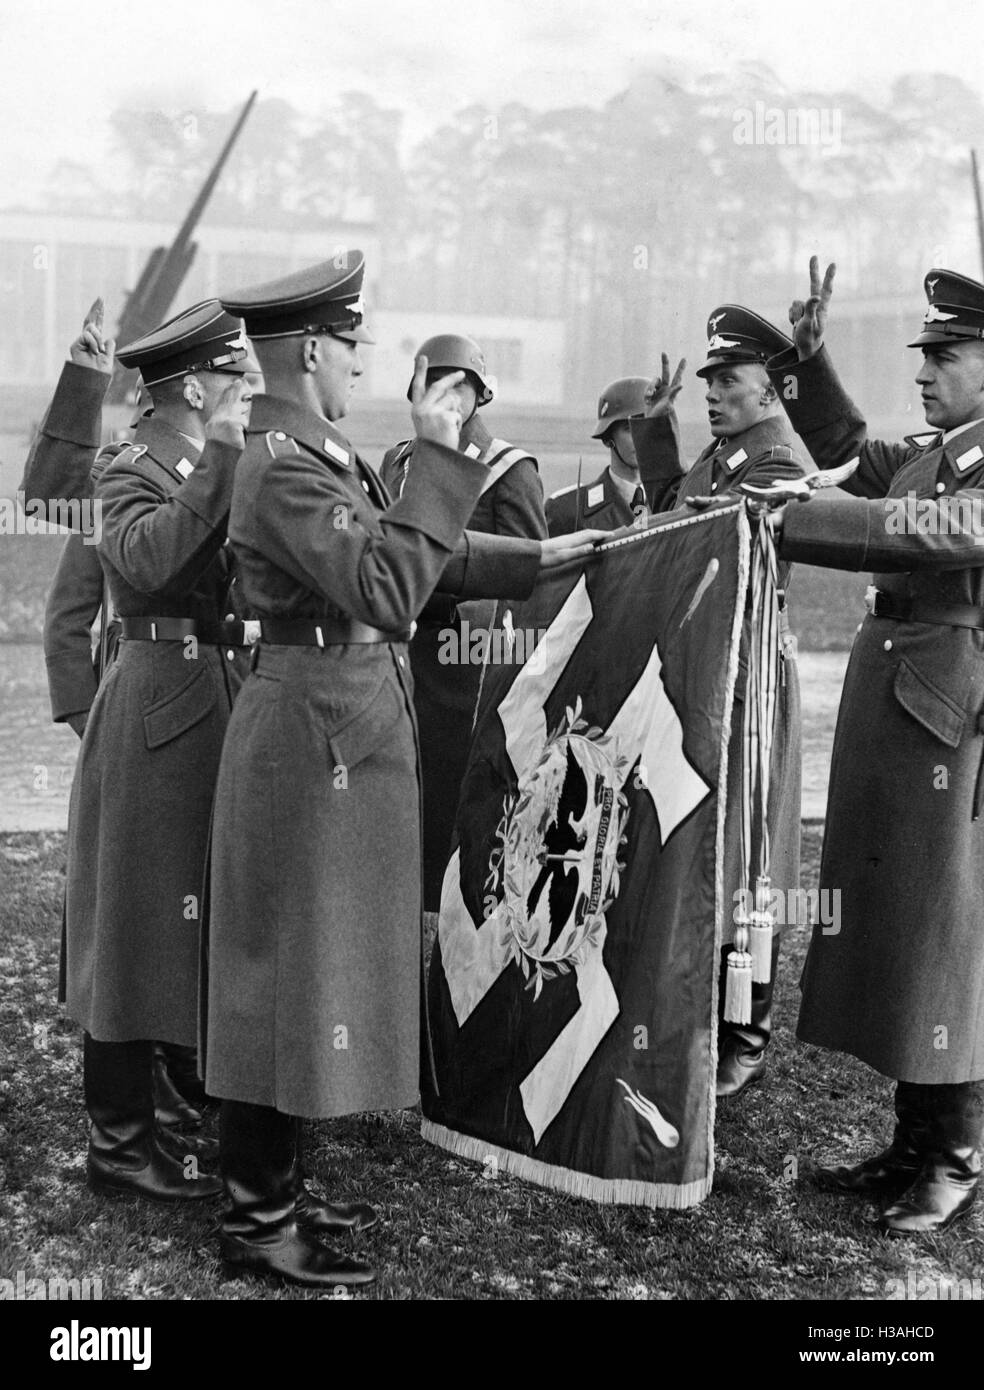 'Swearing-in of recruits of the regiment ''General Goering'', 1938' - Stock Image